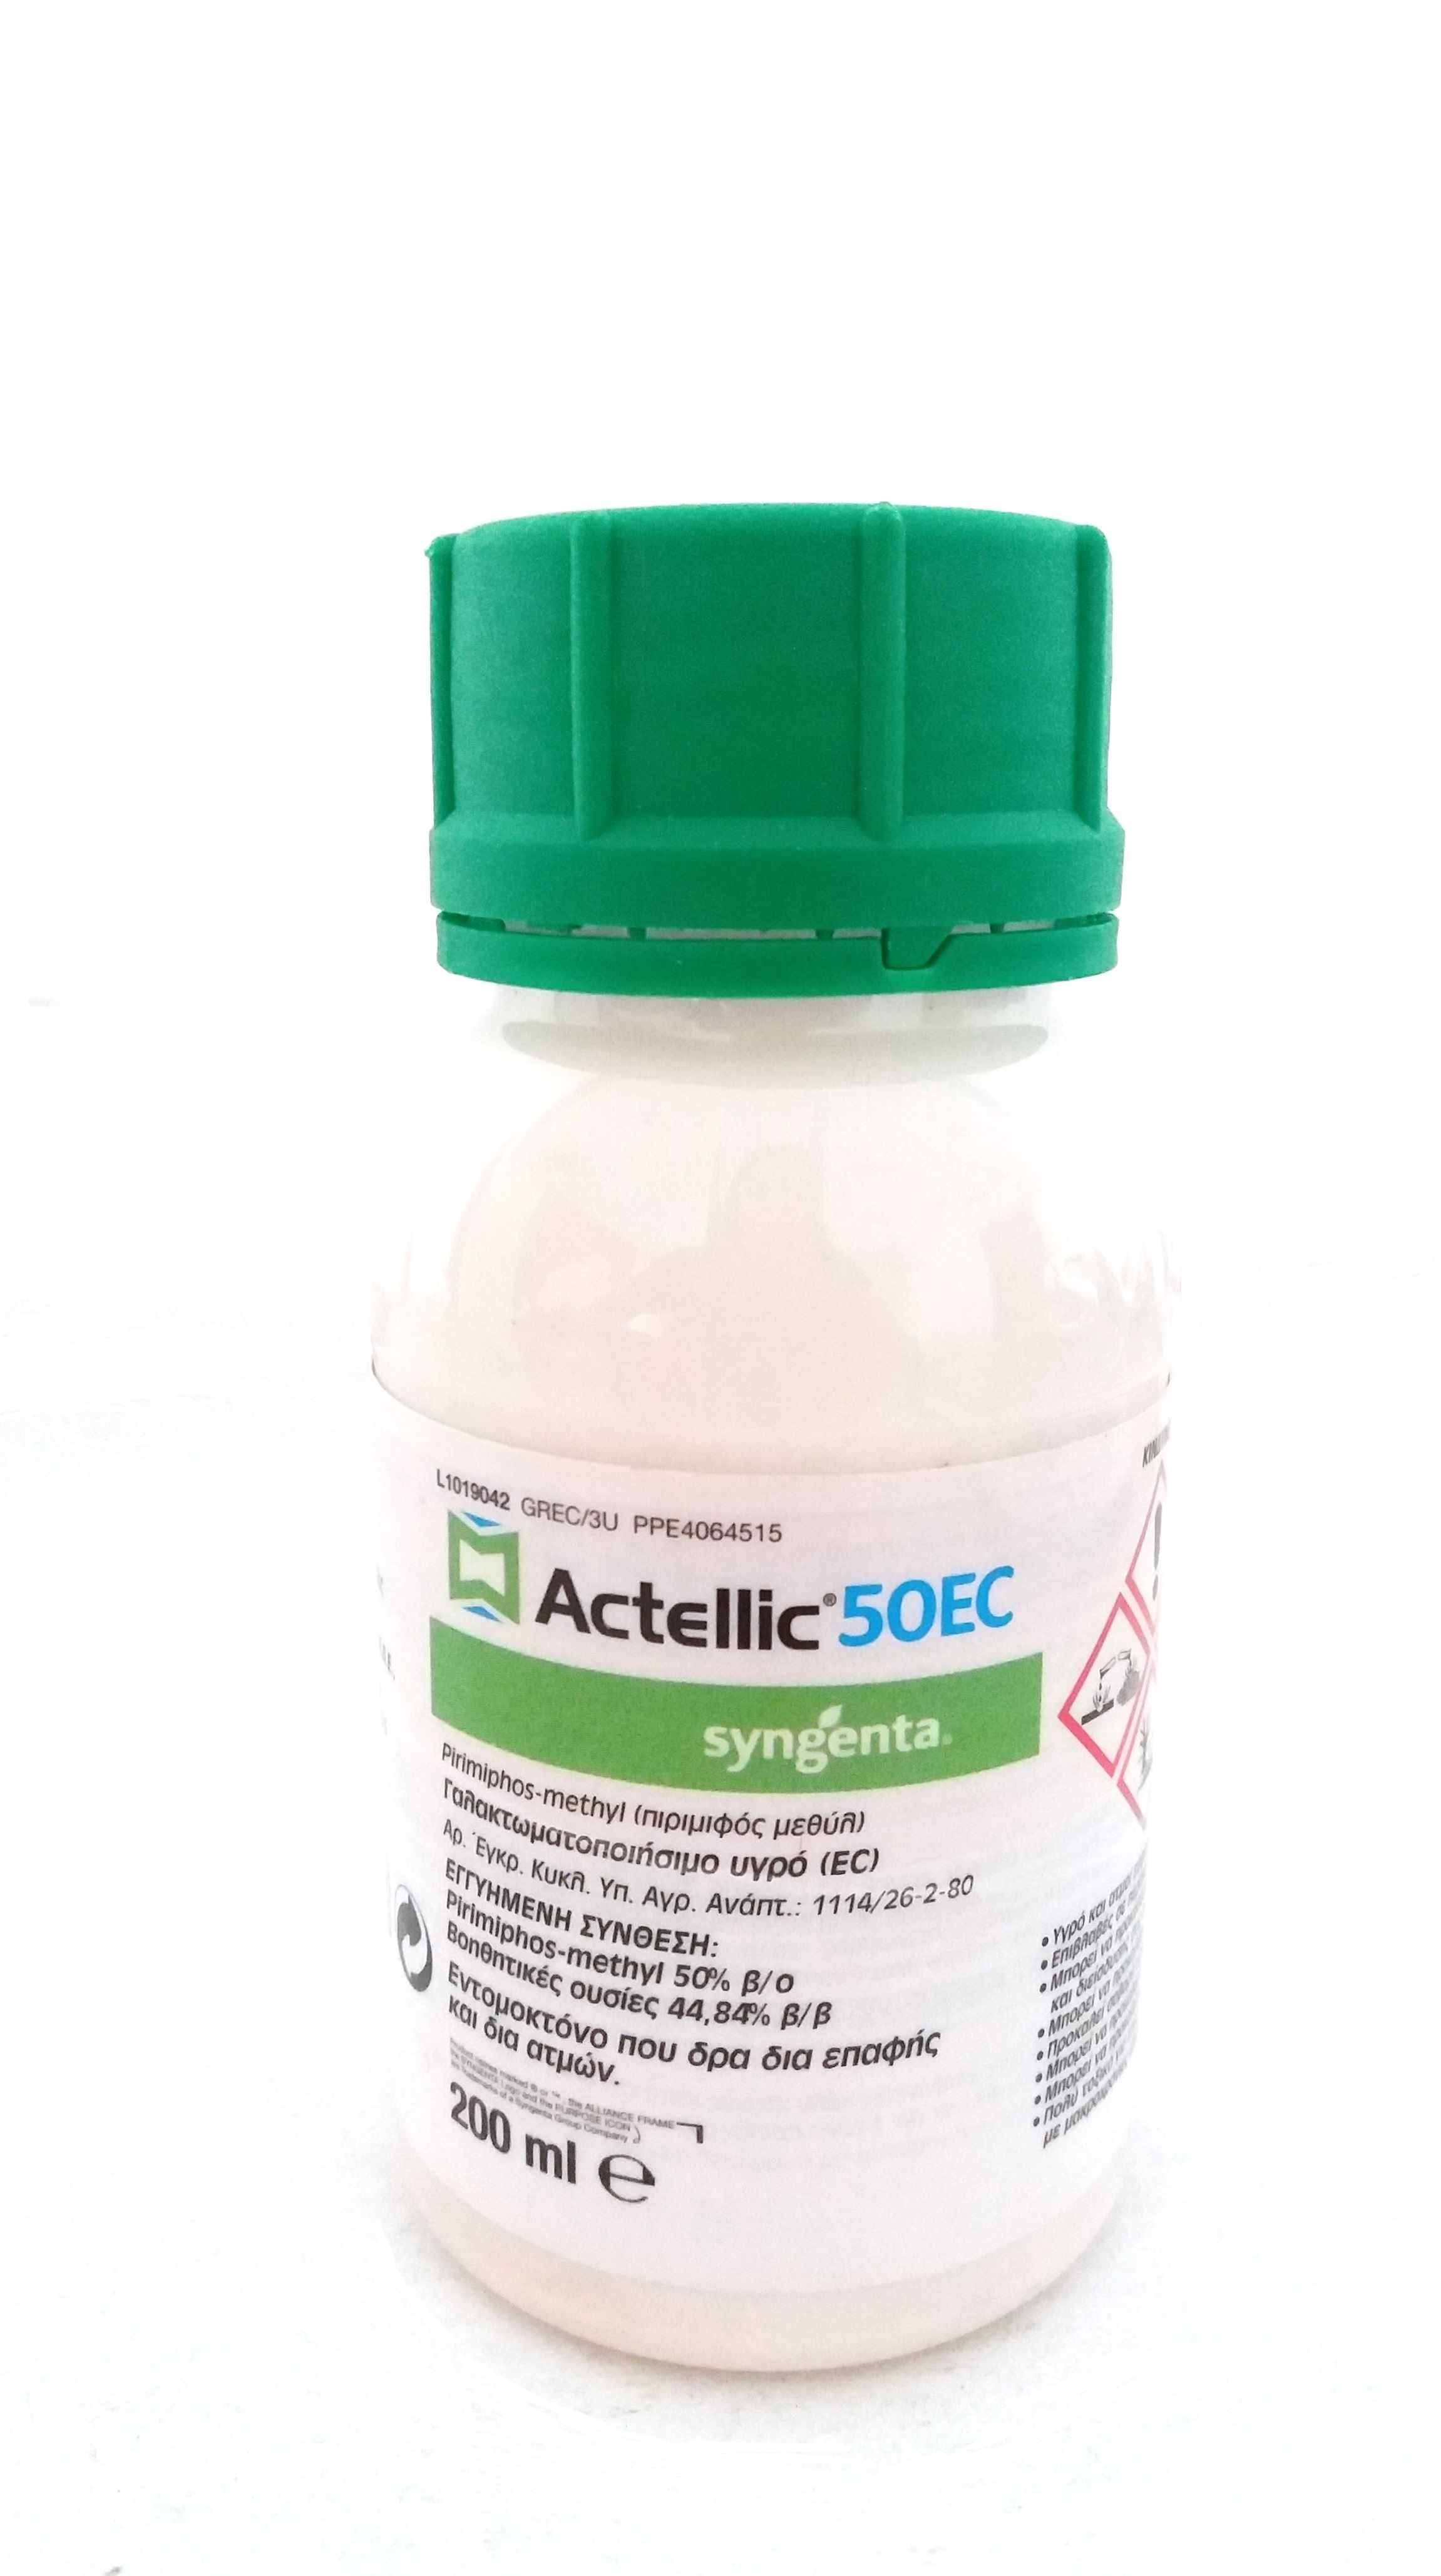 Actellic 50 EC, 200 ml